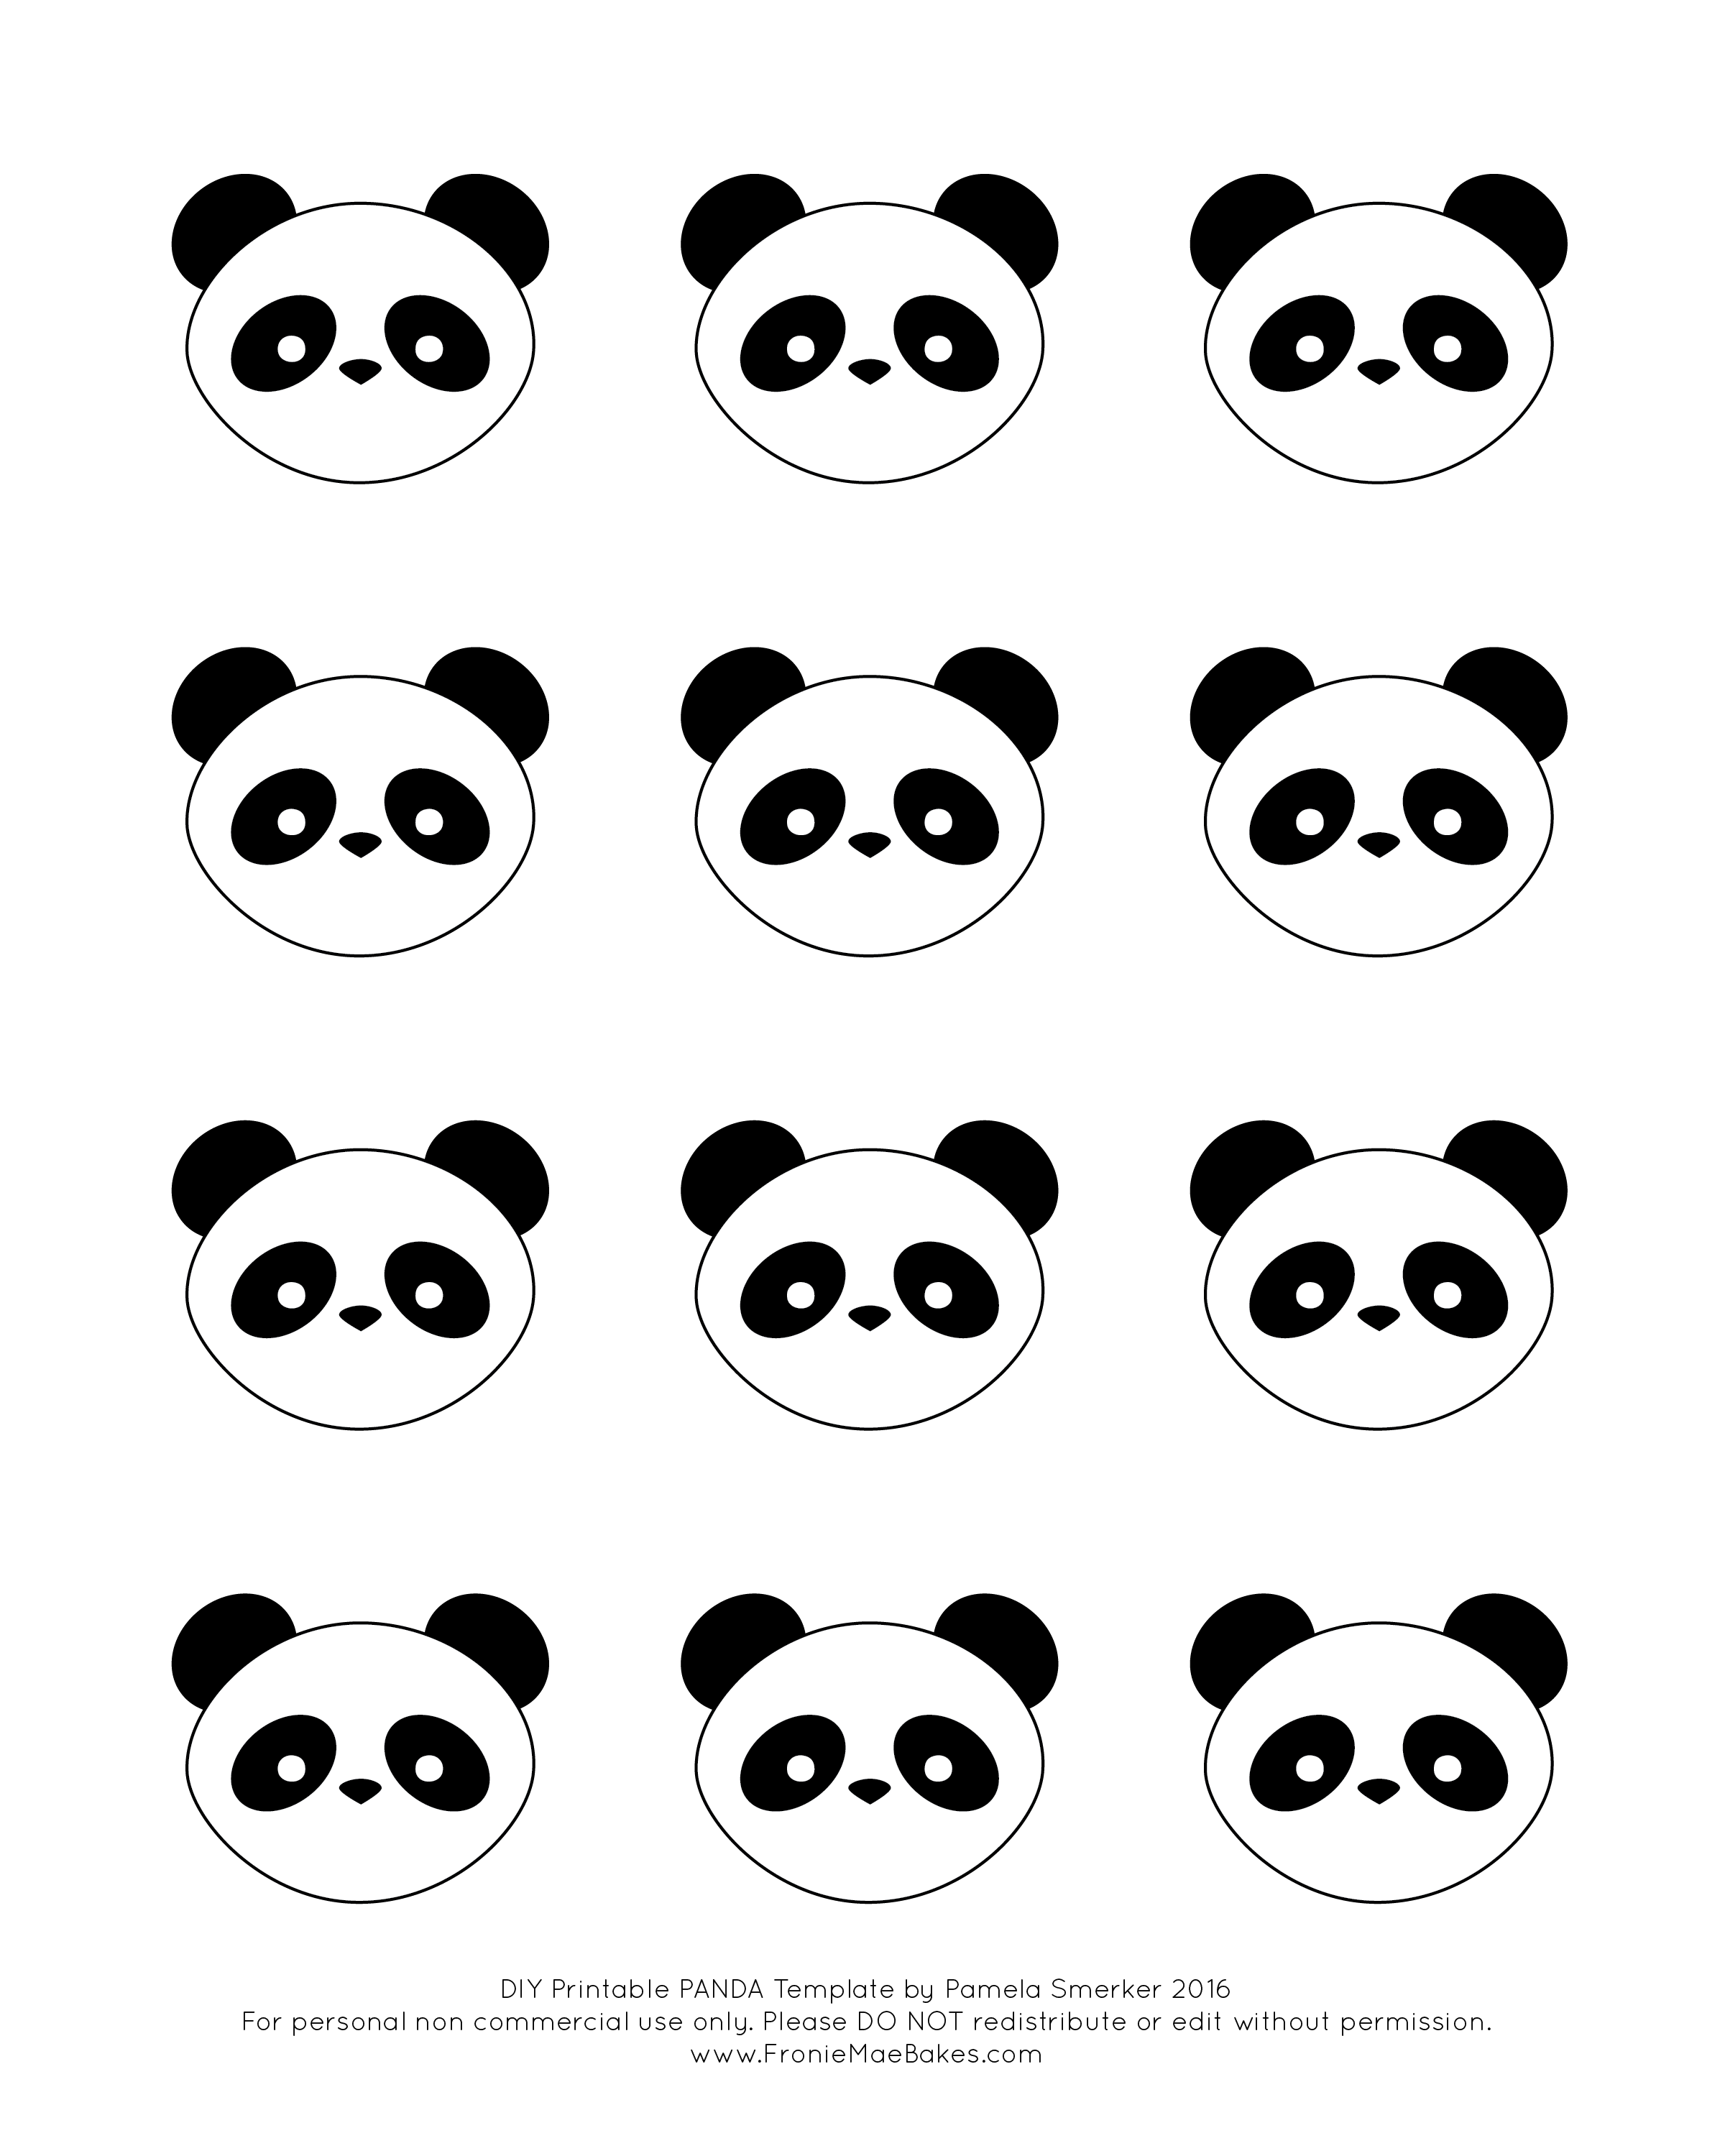 Download The Free Printable Template Here FREE PANDA TEMPLATE And Print It Out Next Whip Up A Batch Of Royal Icing